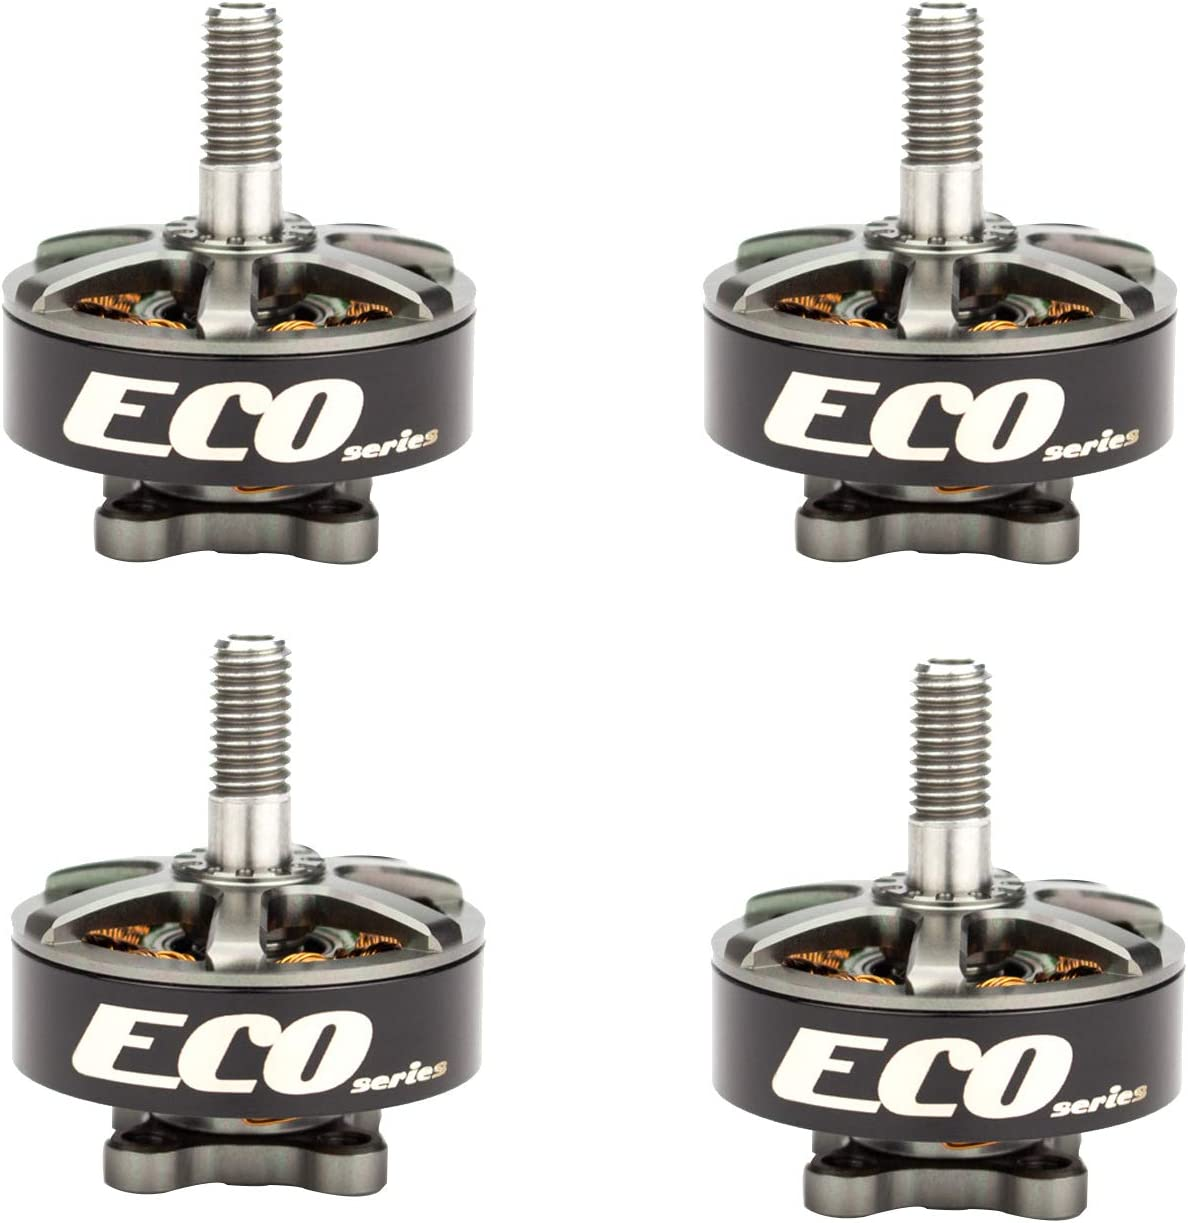 B07T717JCC Crazepony 4pcs Emax ECO2306 1700KV 3-6S Brushless Motor for RC Drone FPV Racing 61PDfZU1RaL